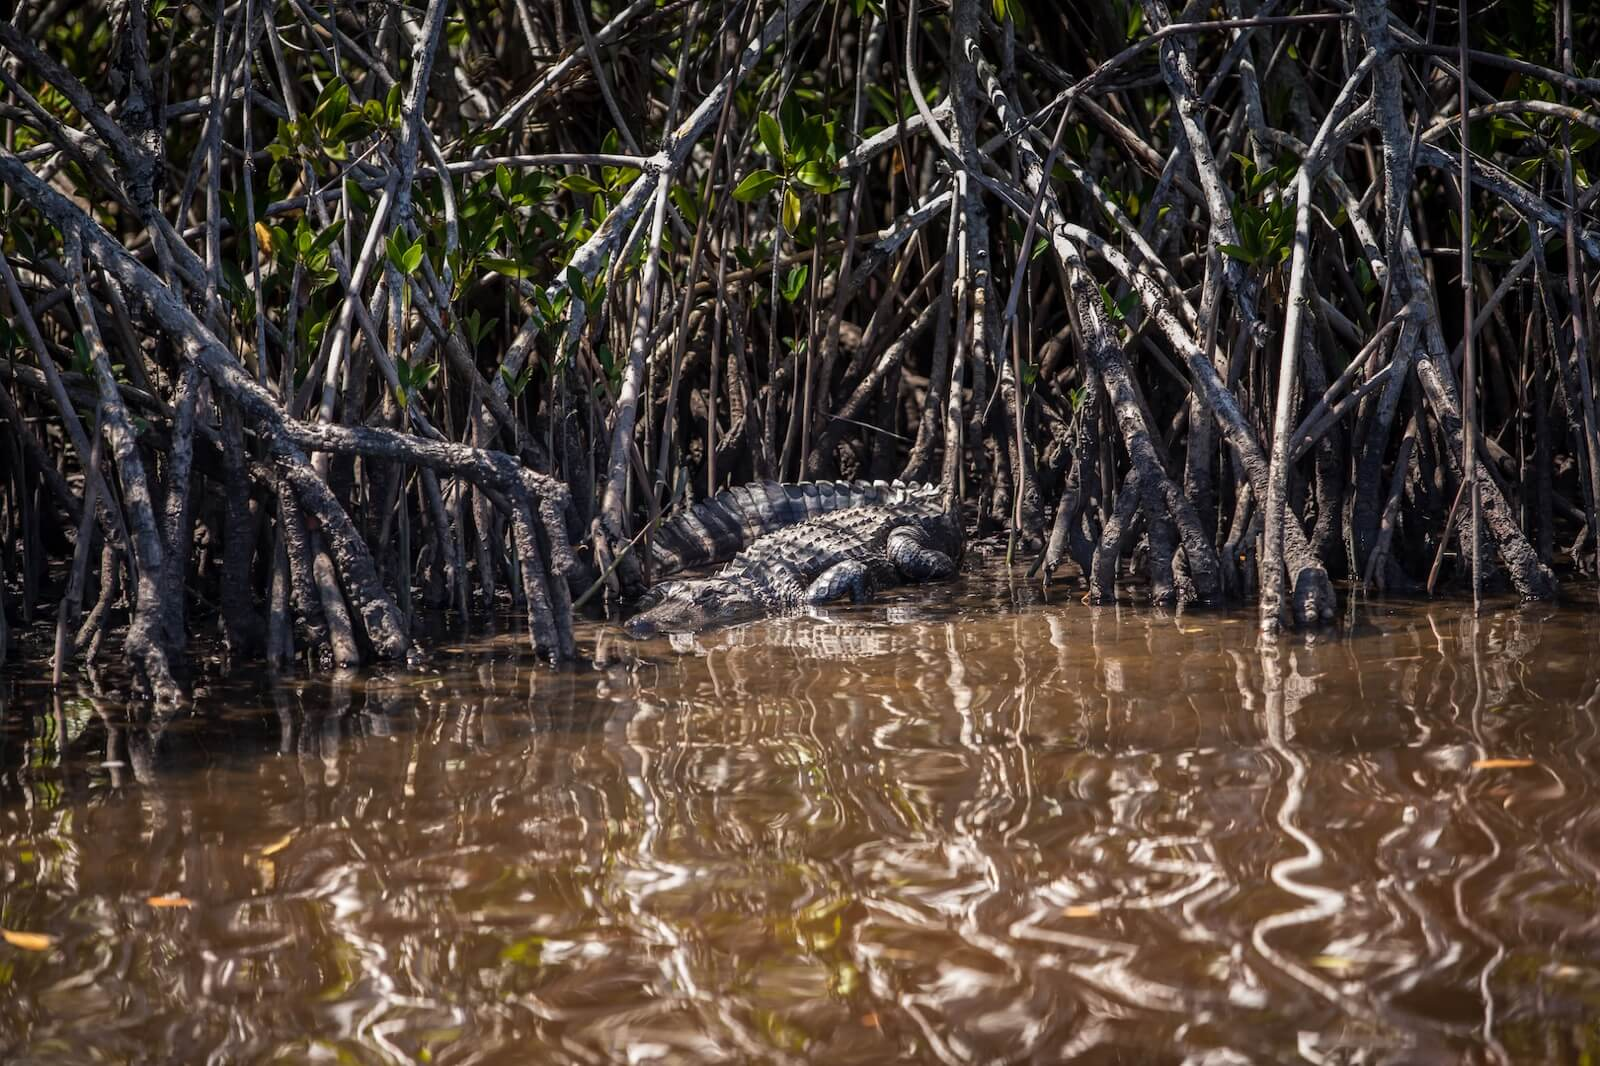 Alligator along the bank of mangroves in the Everglades near Marco Island, Florida.